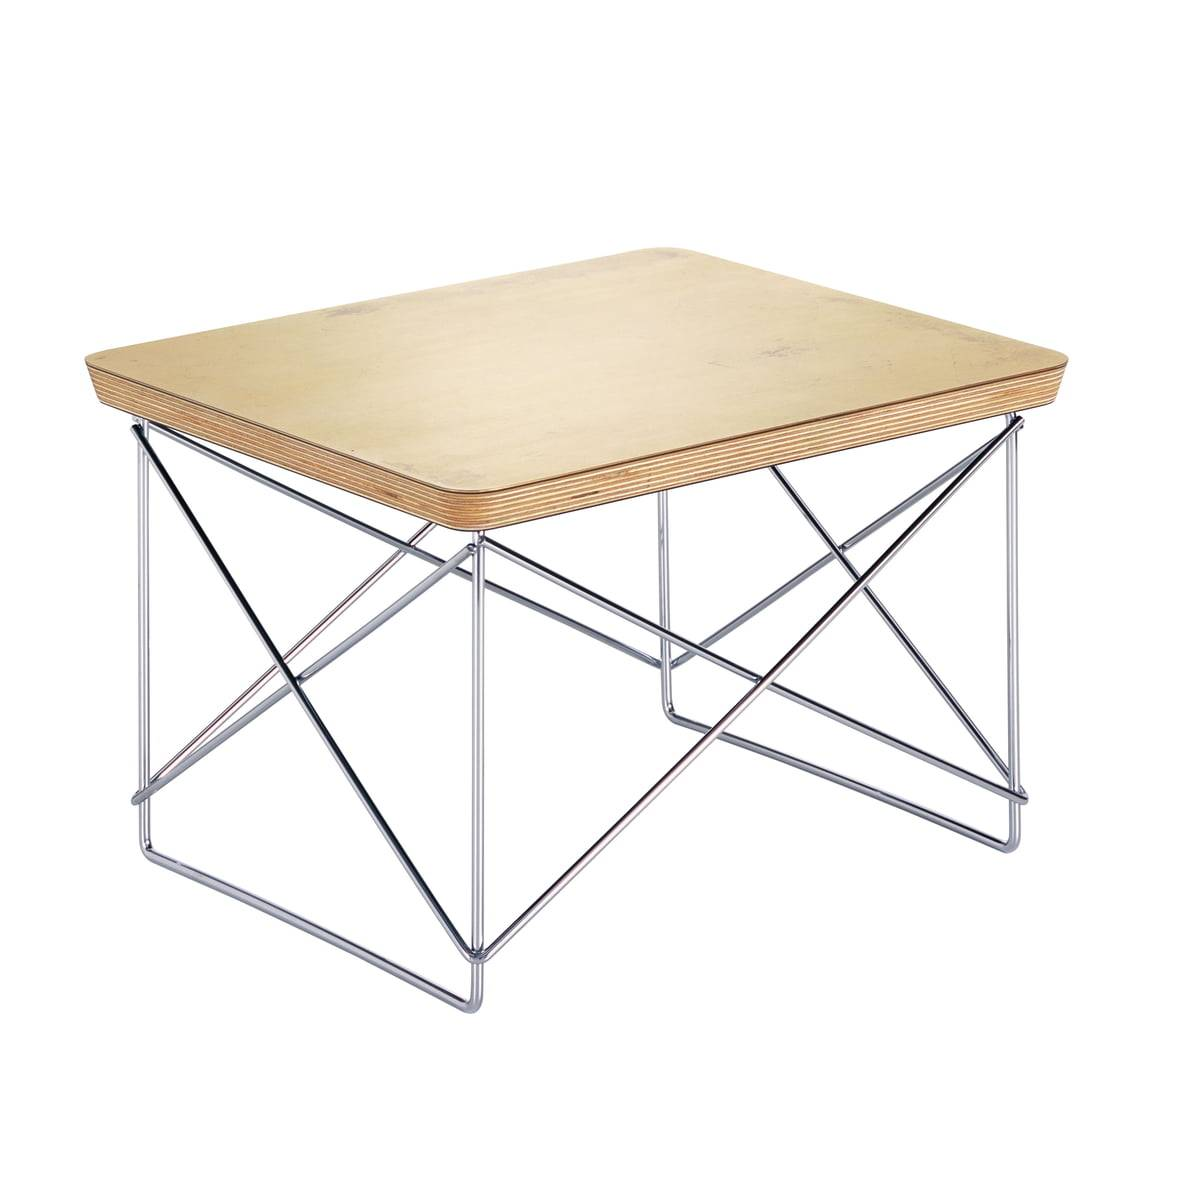 Vitra - Eames Occasional Table LTR, feuille d'or